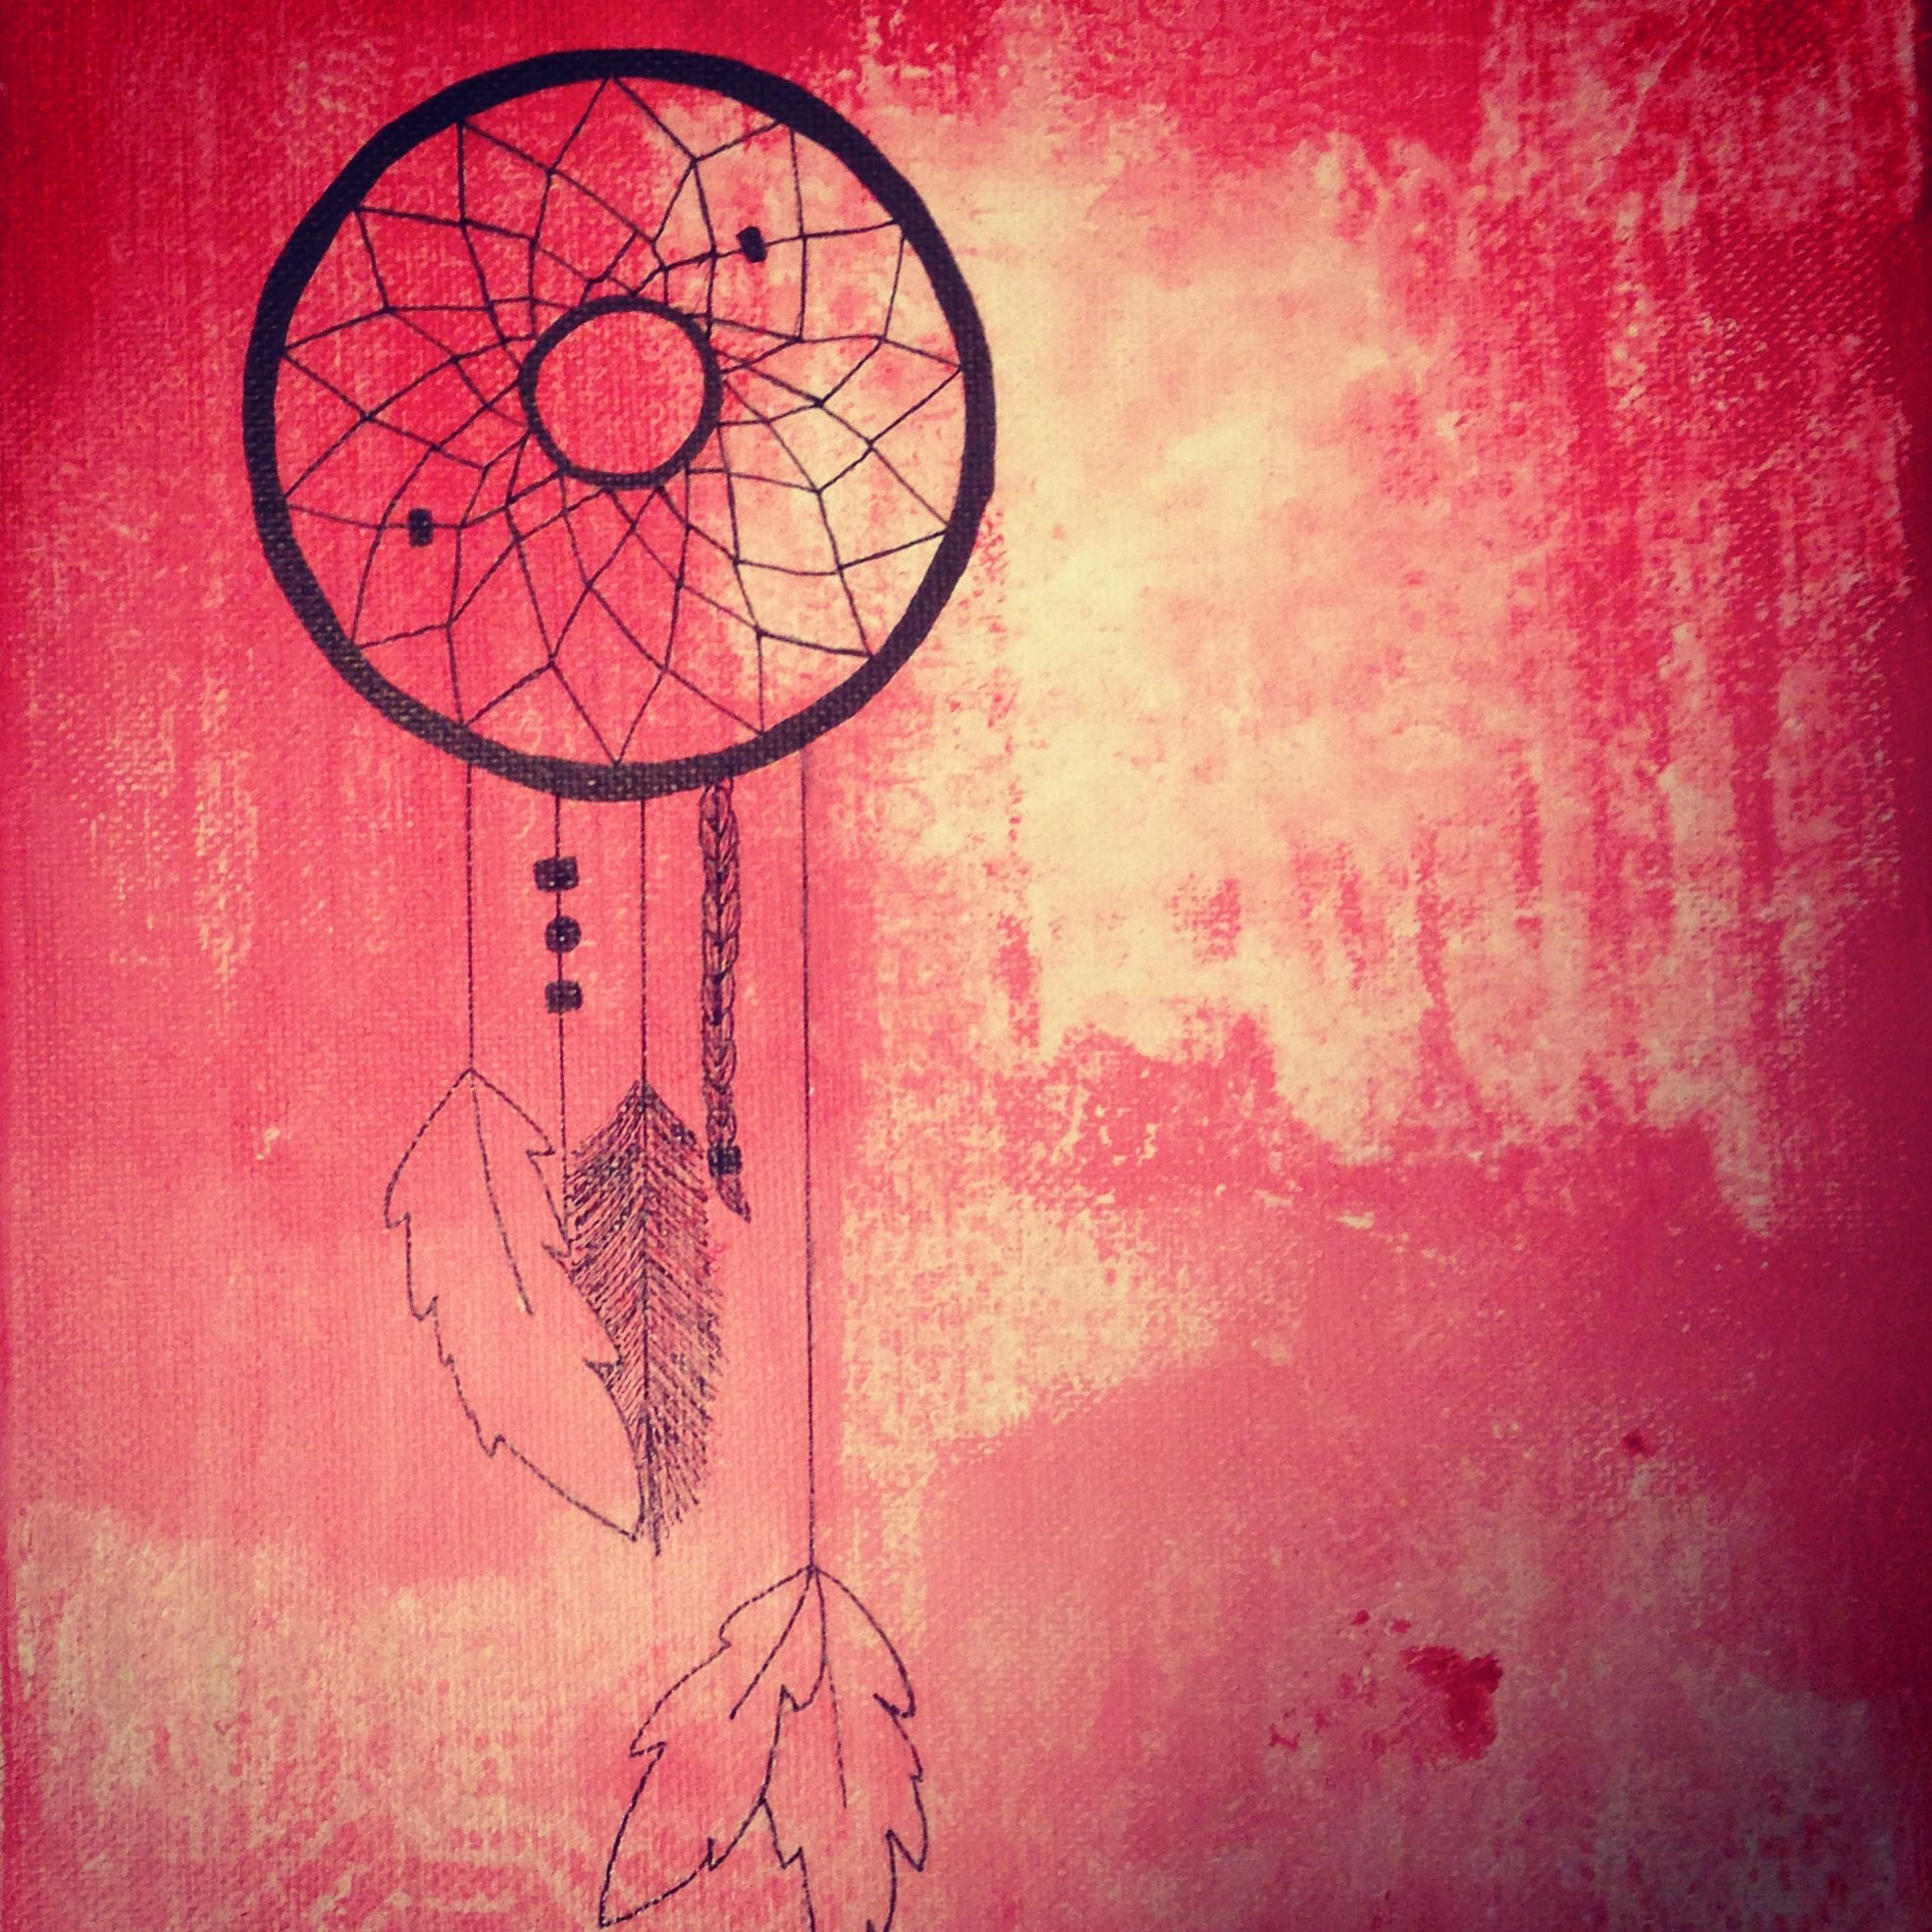 I have a new love for dream catchers